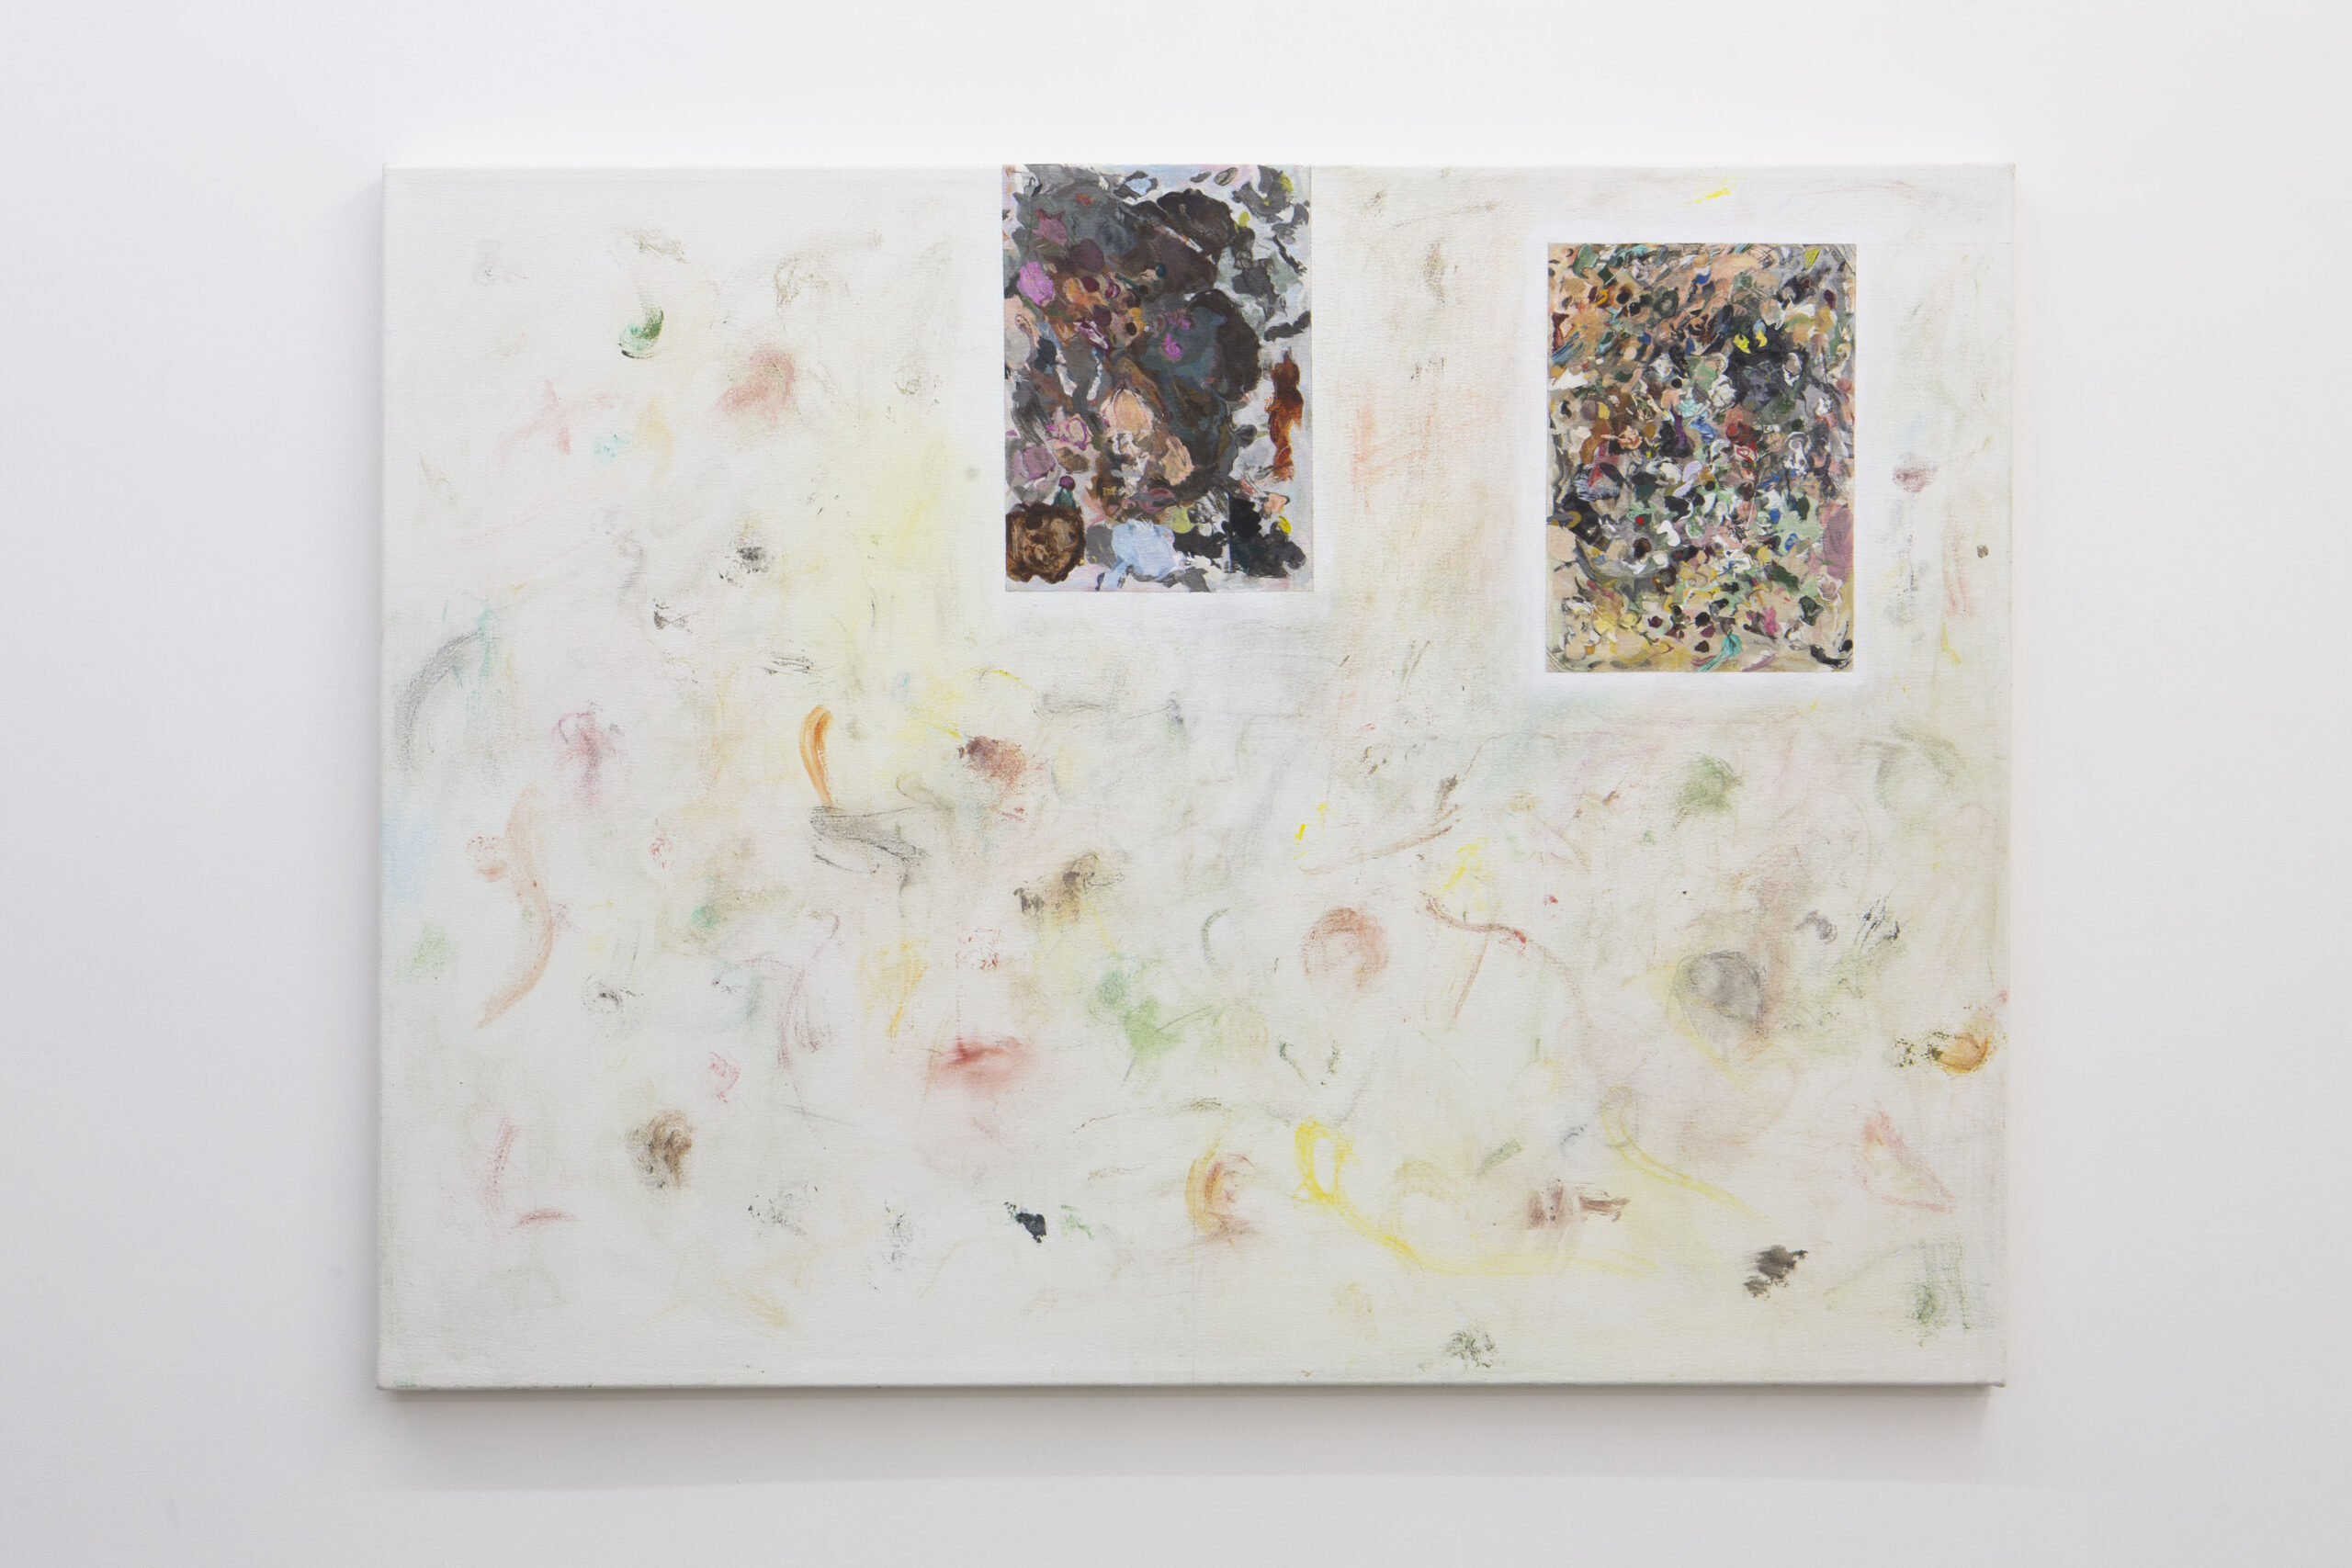 Stuart Brisley: Palettes from The Museum of Ordure (2020) Acrylic on gesso on canvas 92 cm x 122 cm